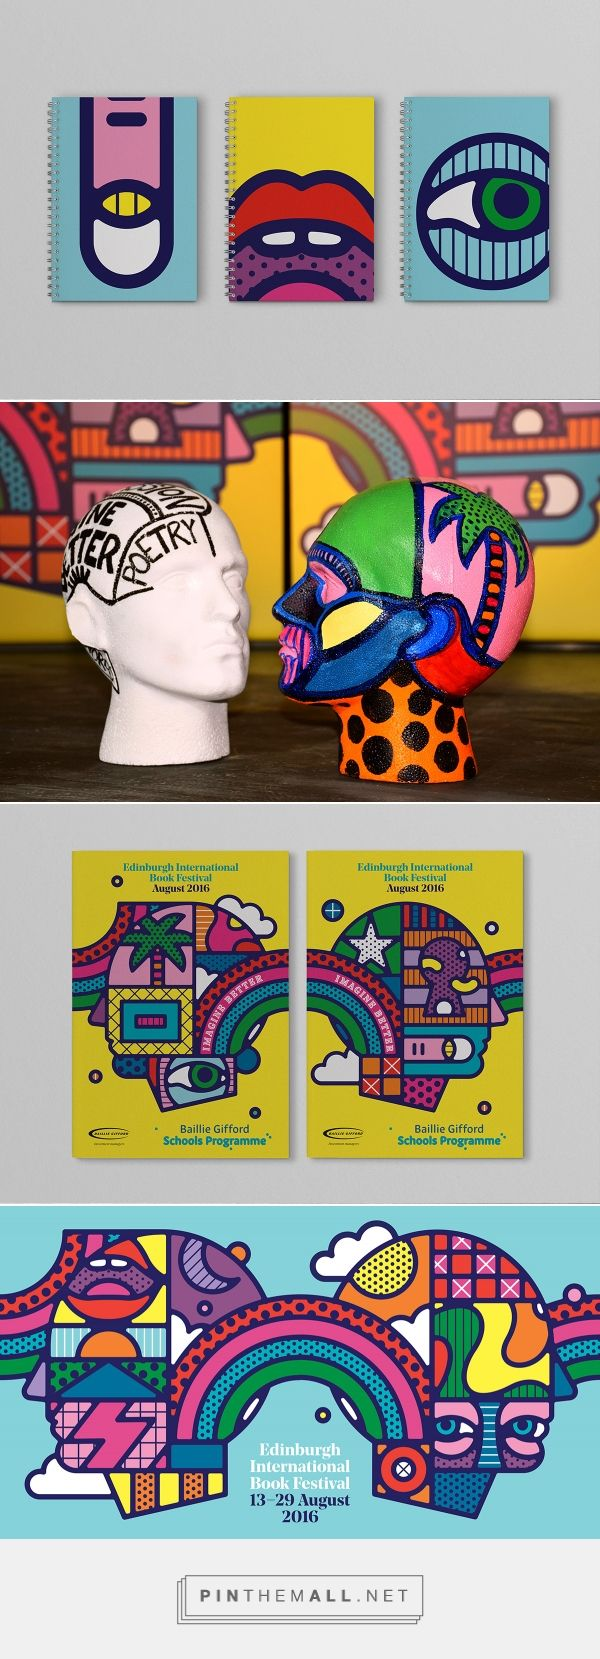 """Craig & Karl and Tangent's psychedelic identity for Edinburgh International Book Festival - """"By loosely following this visual language [of psychedelia and psychedelic art], we could set a tone that was celebratory and bright with a 'festival feel' but had a sense of depth suitable for much of the Book Festival's subject matter,"""" says Tangent creative director David Whyte."""""""